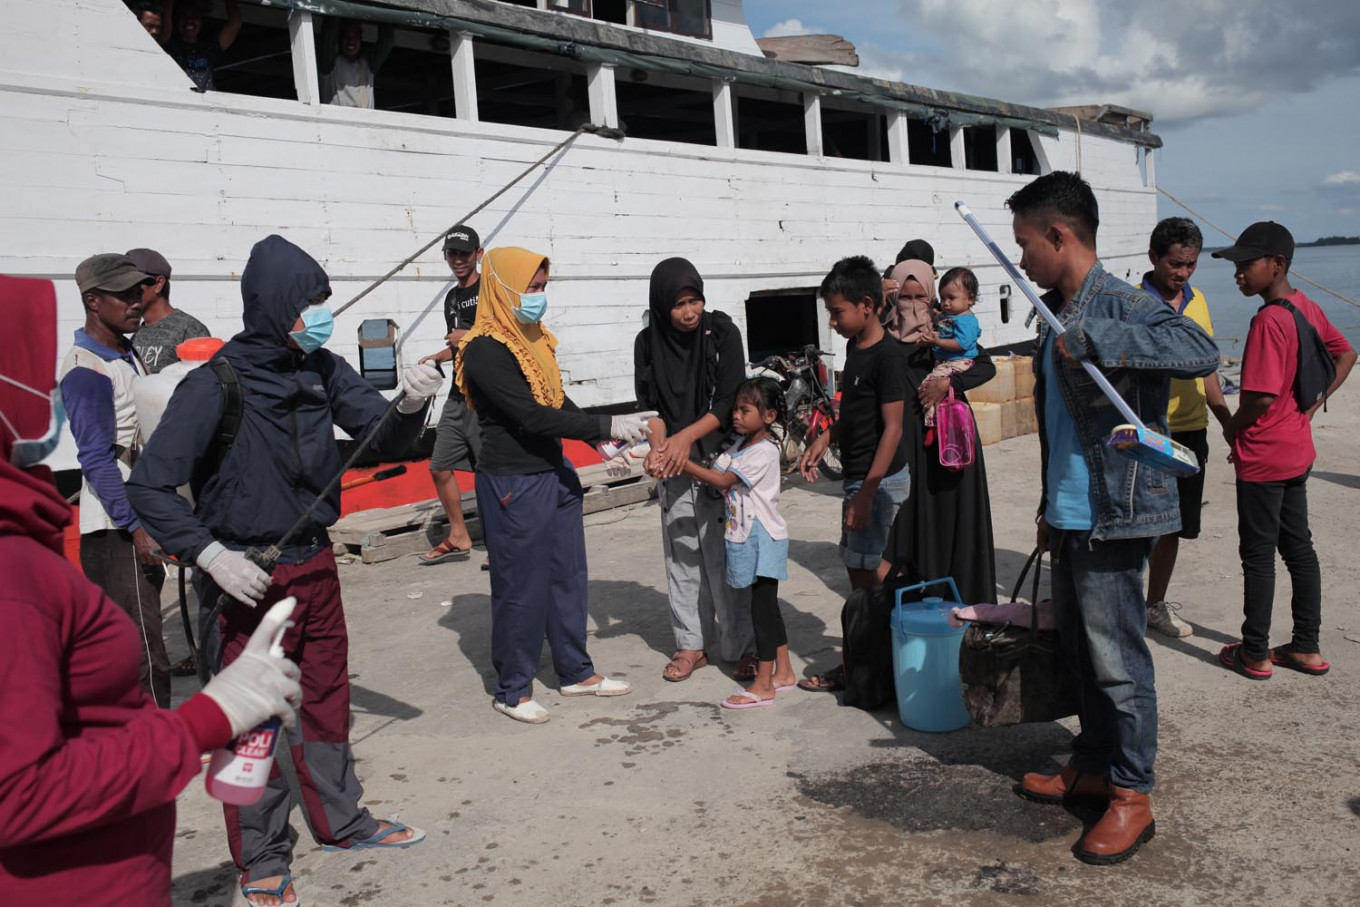 The disinfectant workers pay special attention to passengers from Kendari city in Southeast Sulawesi, as the city has recorded three COVID-19 cases. JP/ Edy Susanto